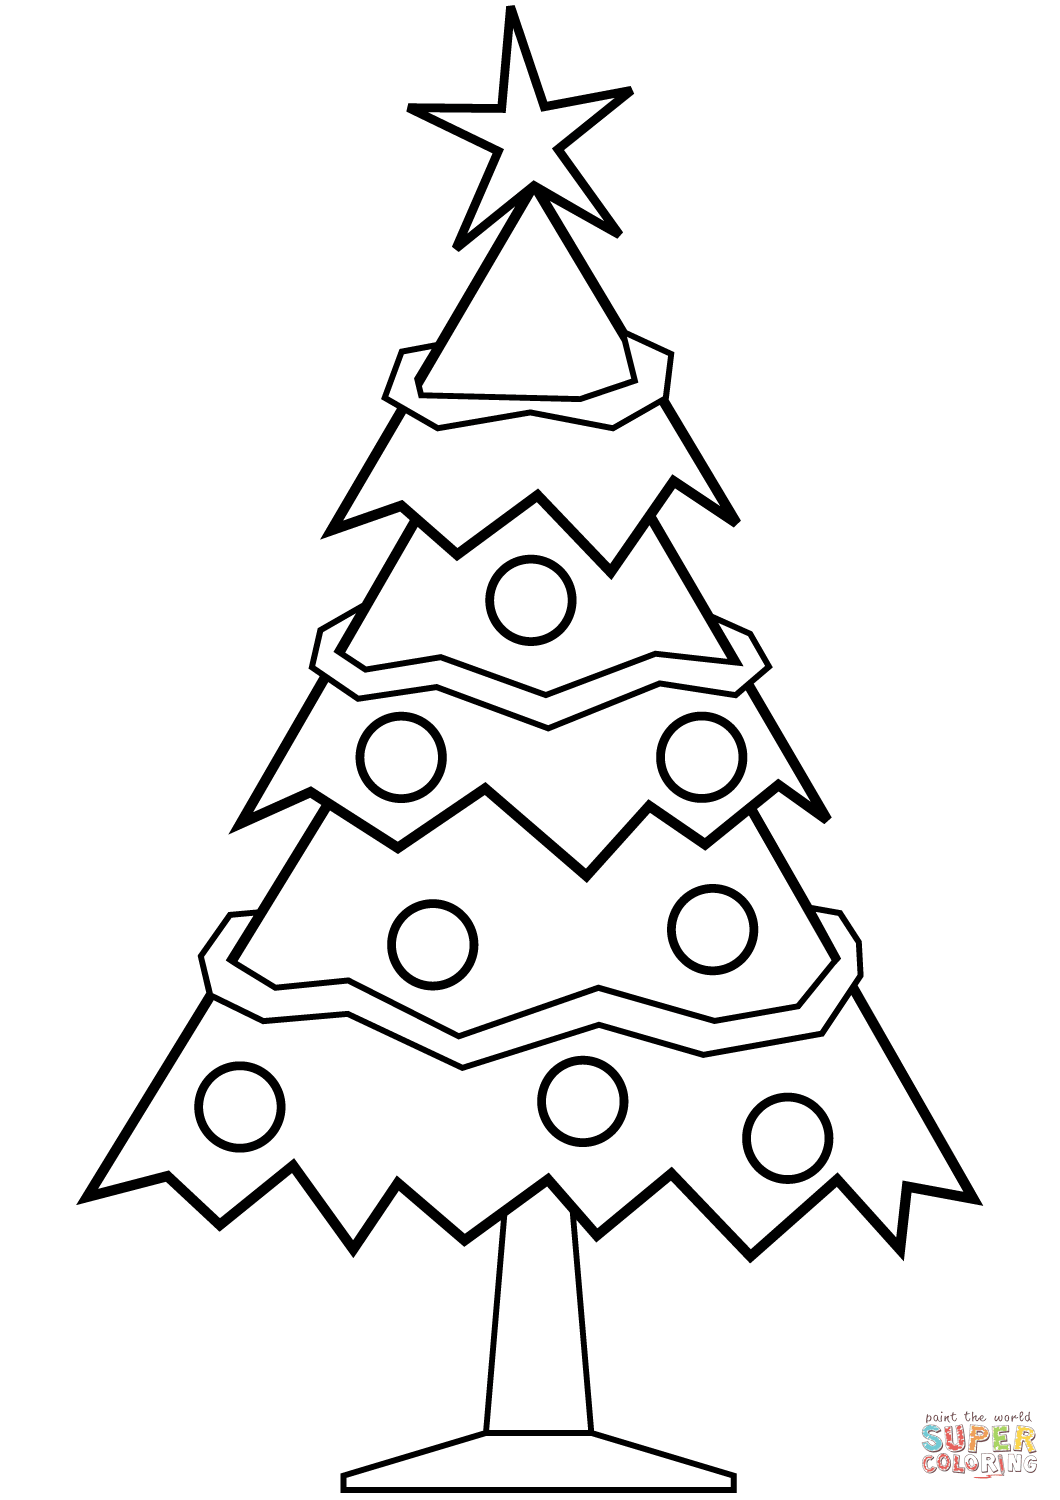 1060x1500 simple christmas tree coloring page free printable coloring pages - Christmas Tree Printable Coloring Pages